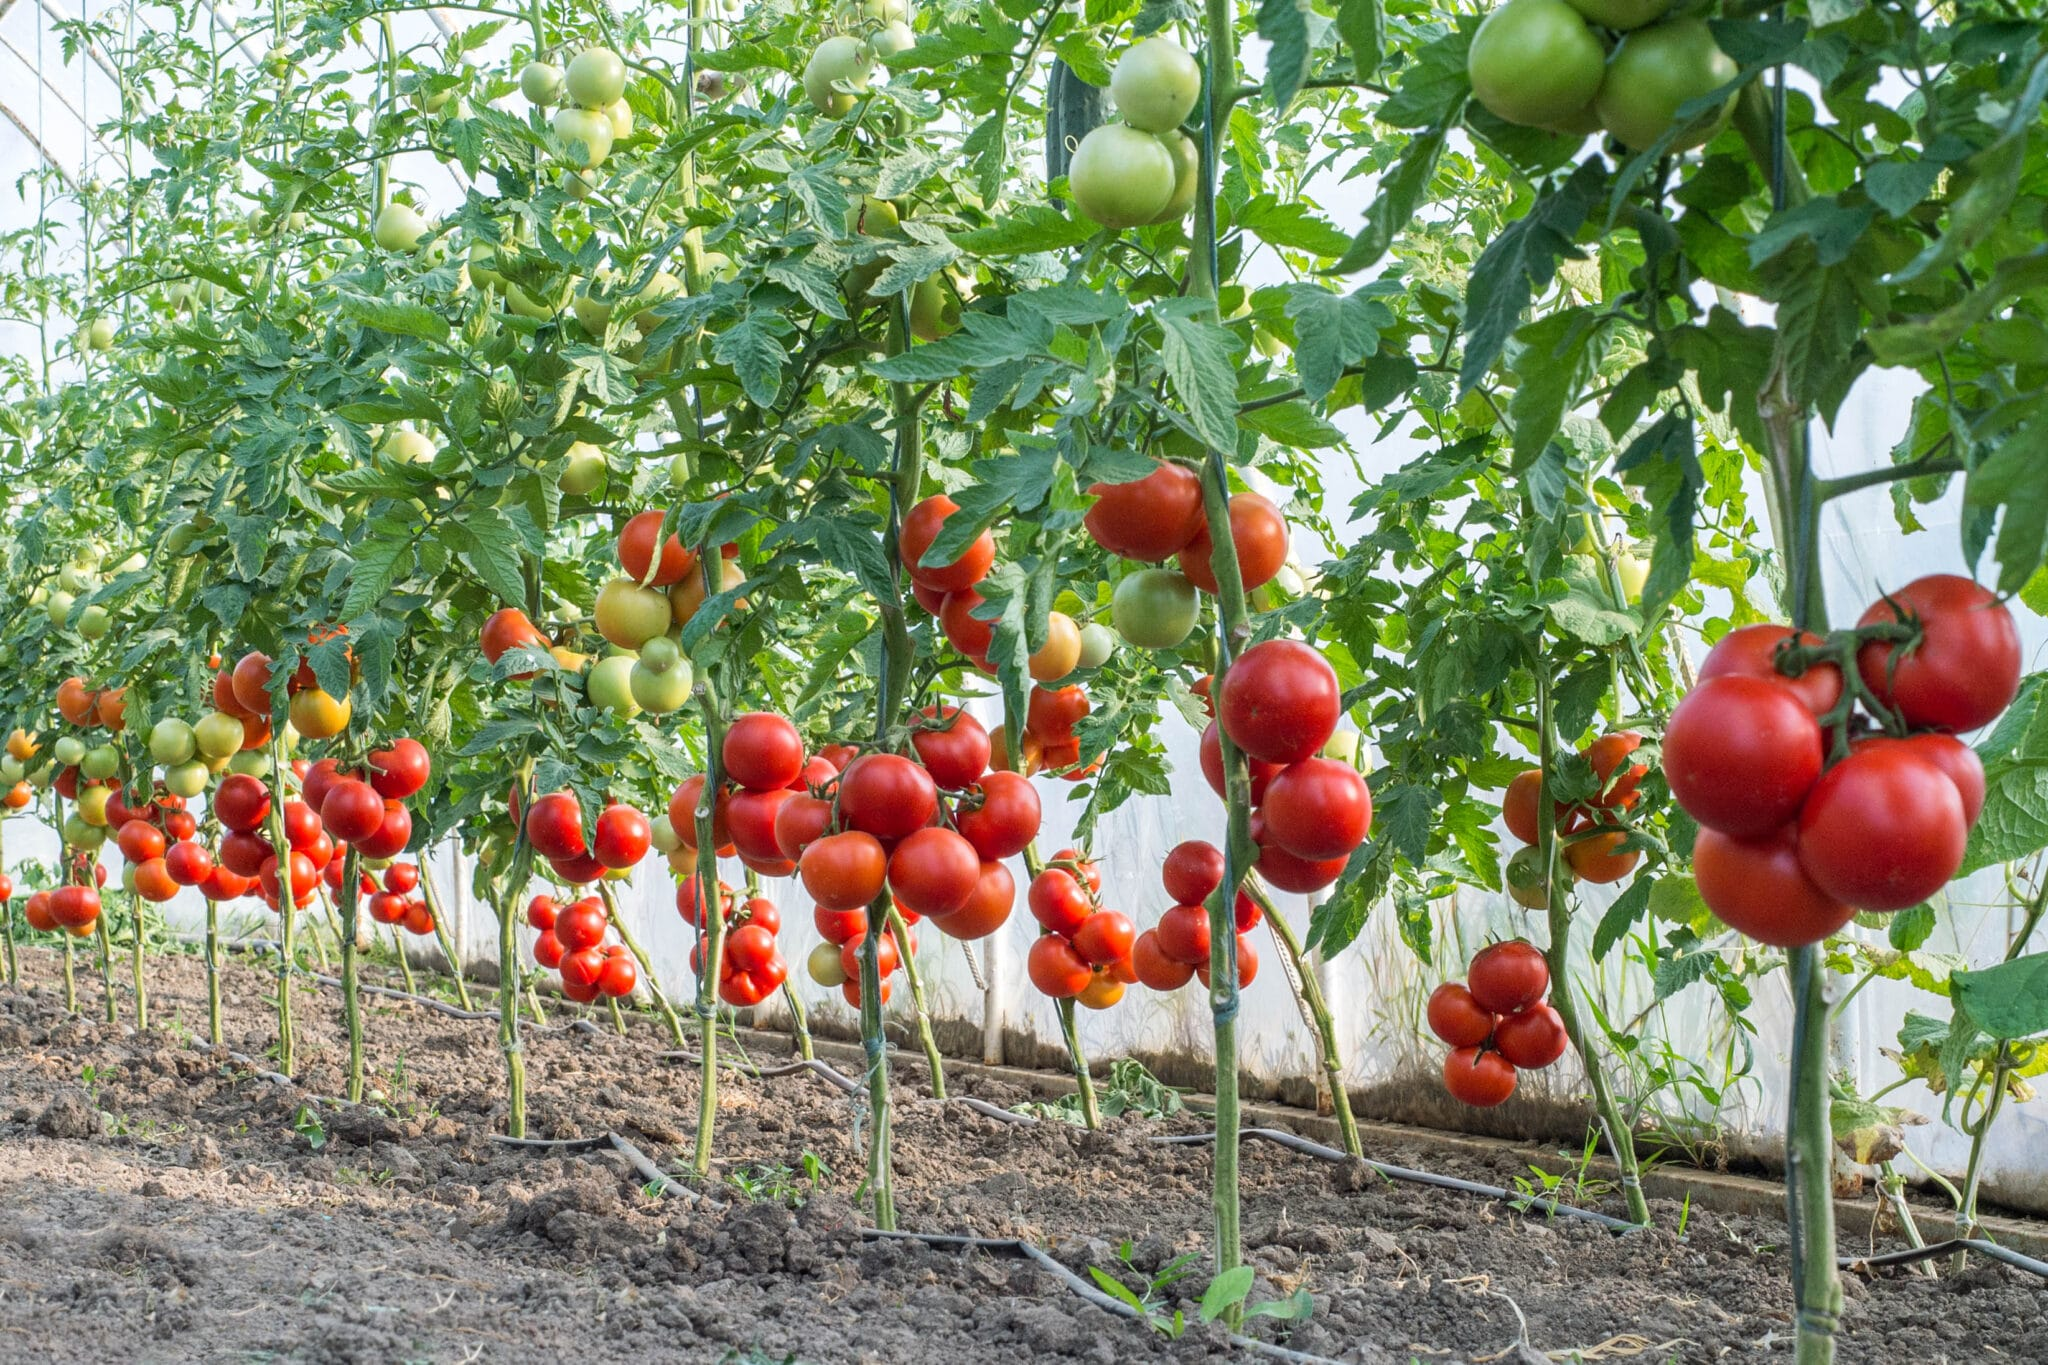 Tomato plants trimmed and trained to grow as single-leaders, with the main stalk twisting up a single string, and all other branches trimmed away. The plants have large clusters of ripe tomatoes, and very few leaves.